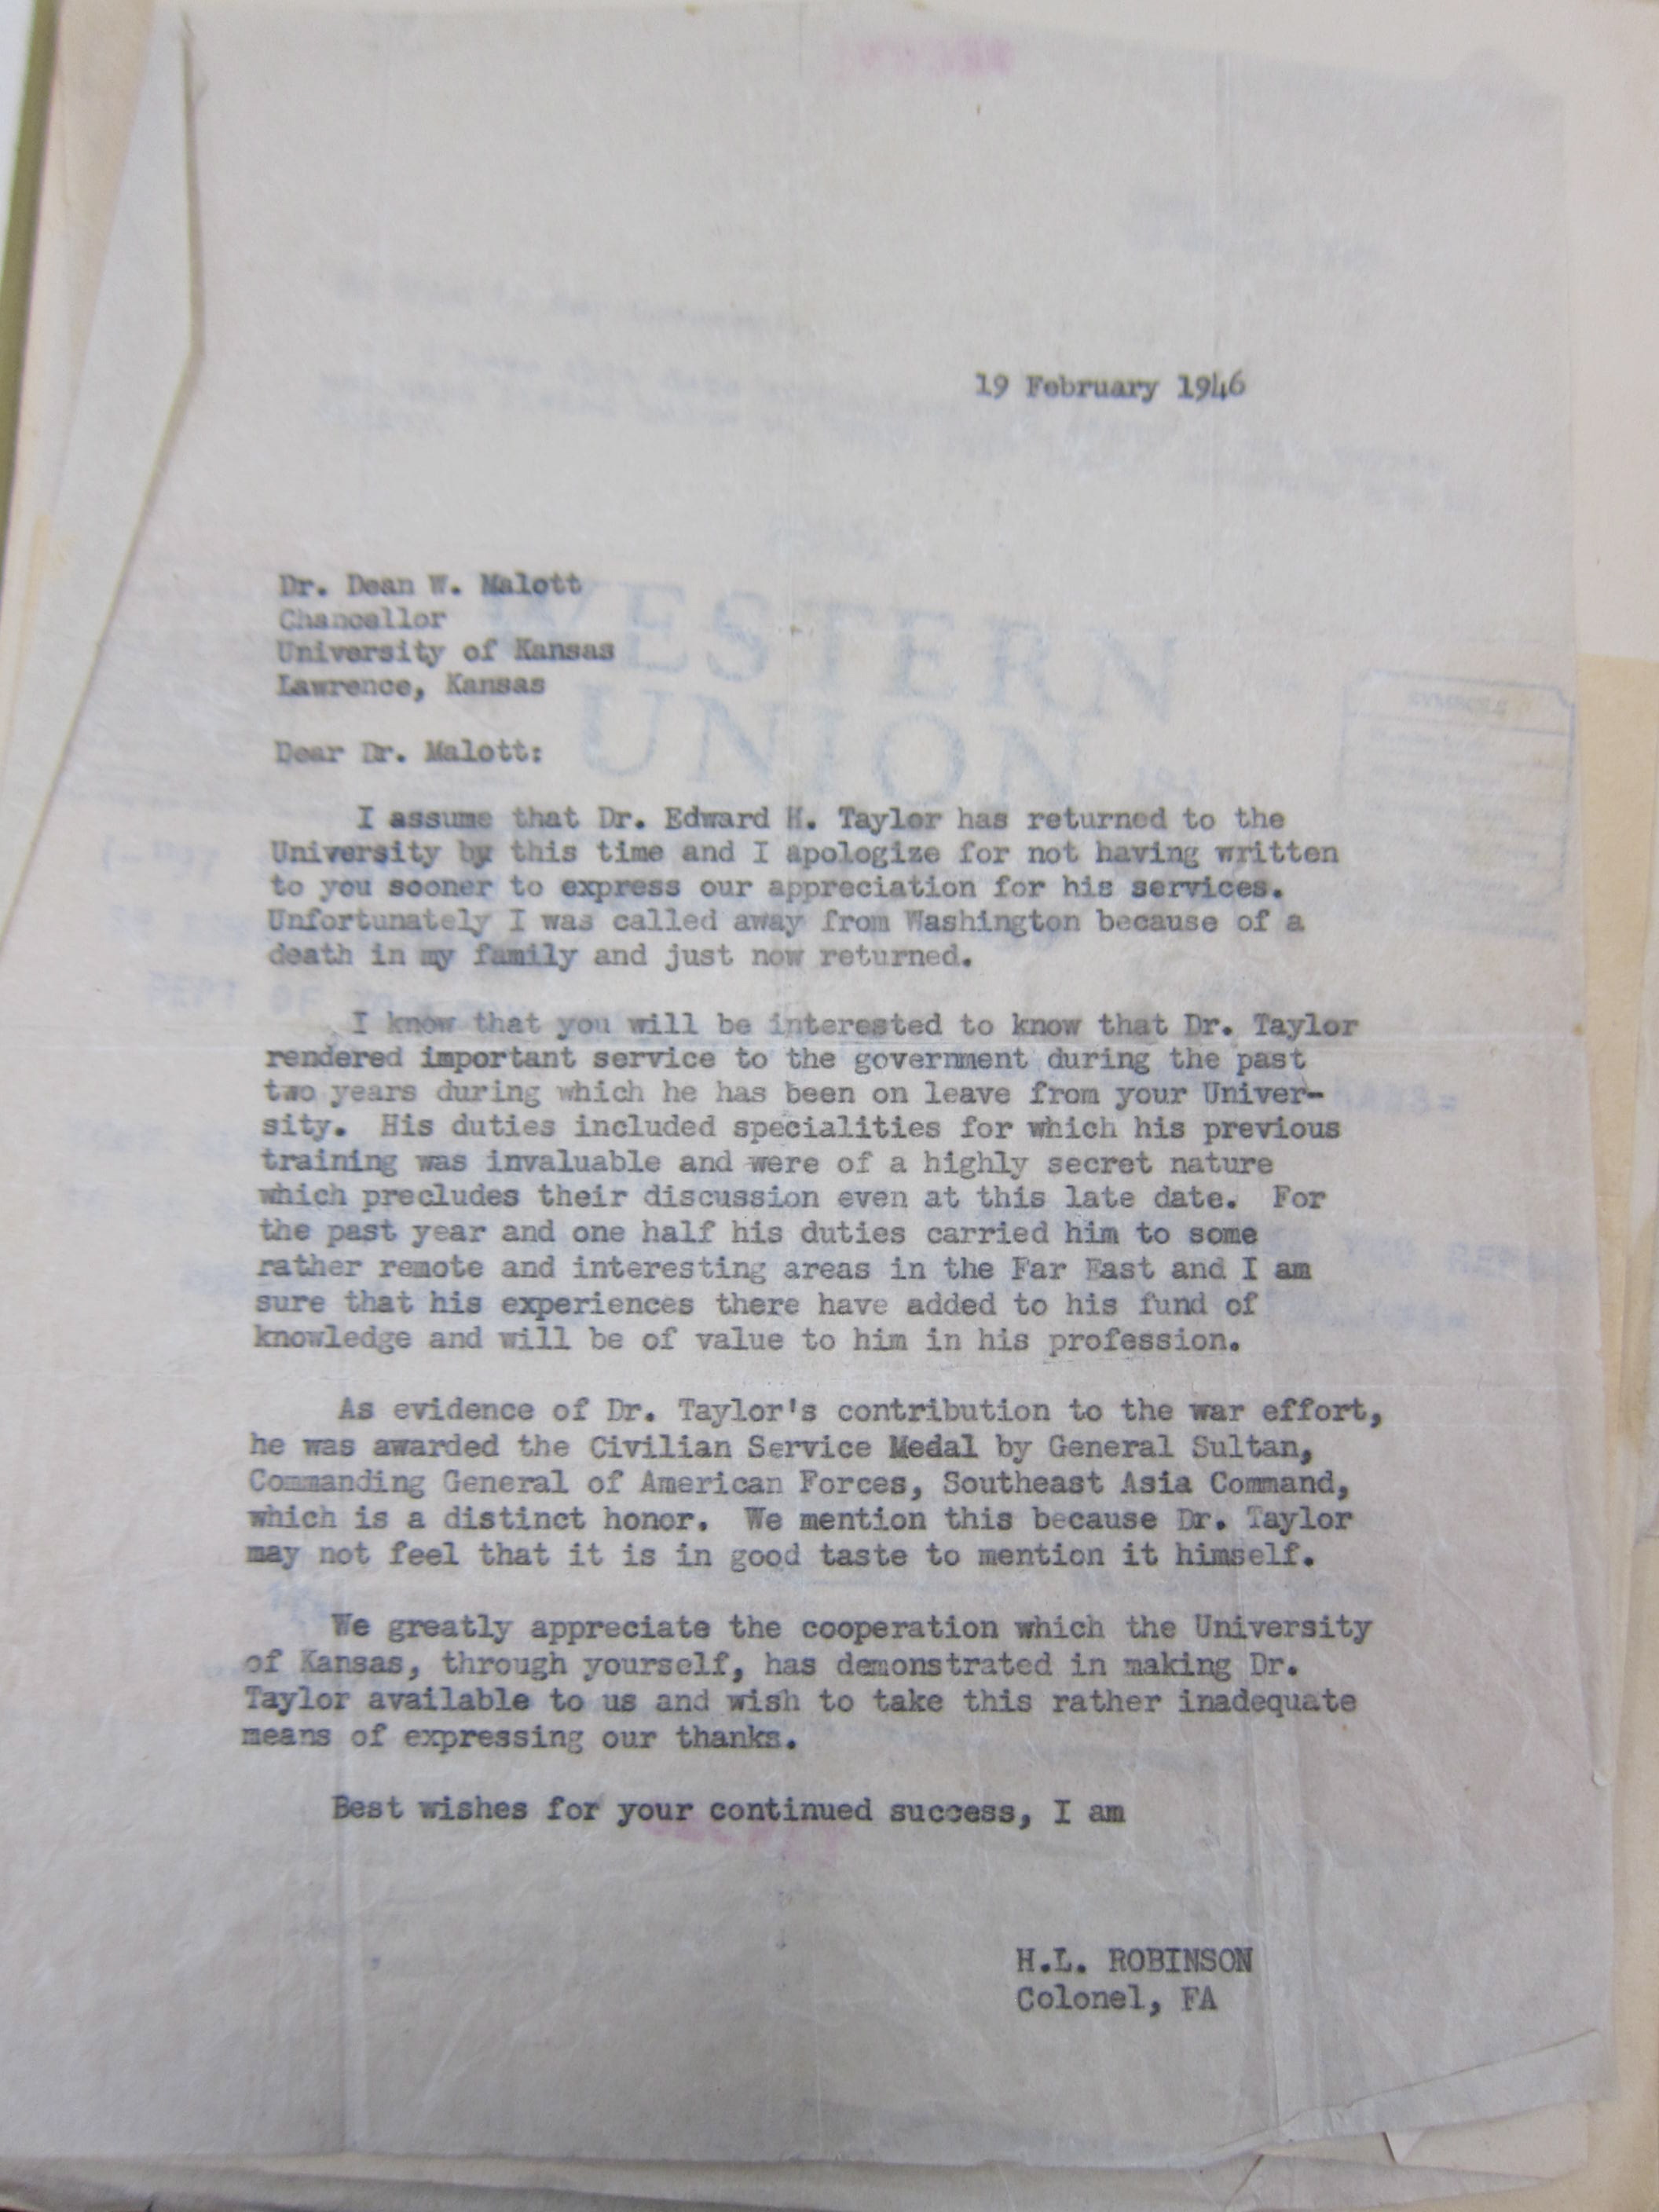 Letter from an OSS leader to Edward Taylor's dean at the University of Kansas